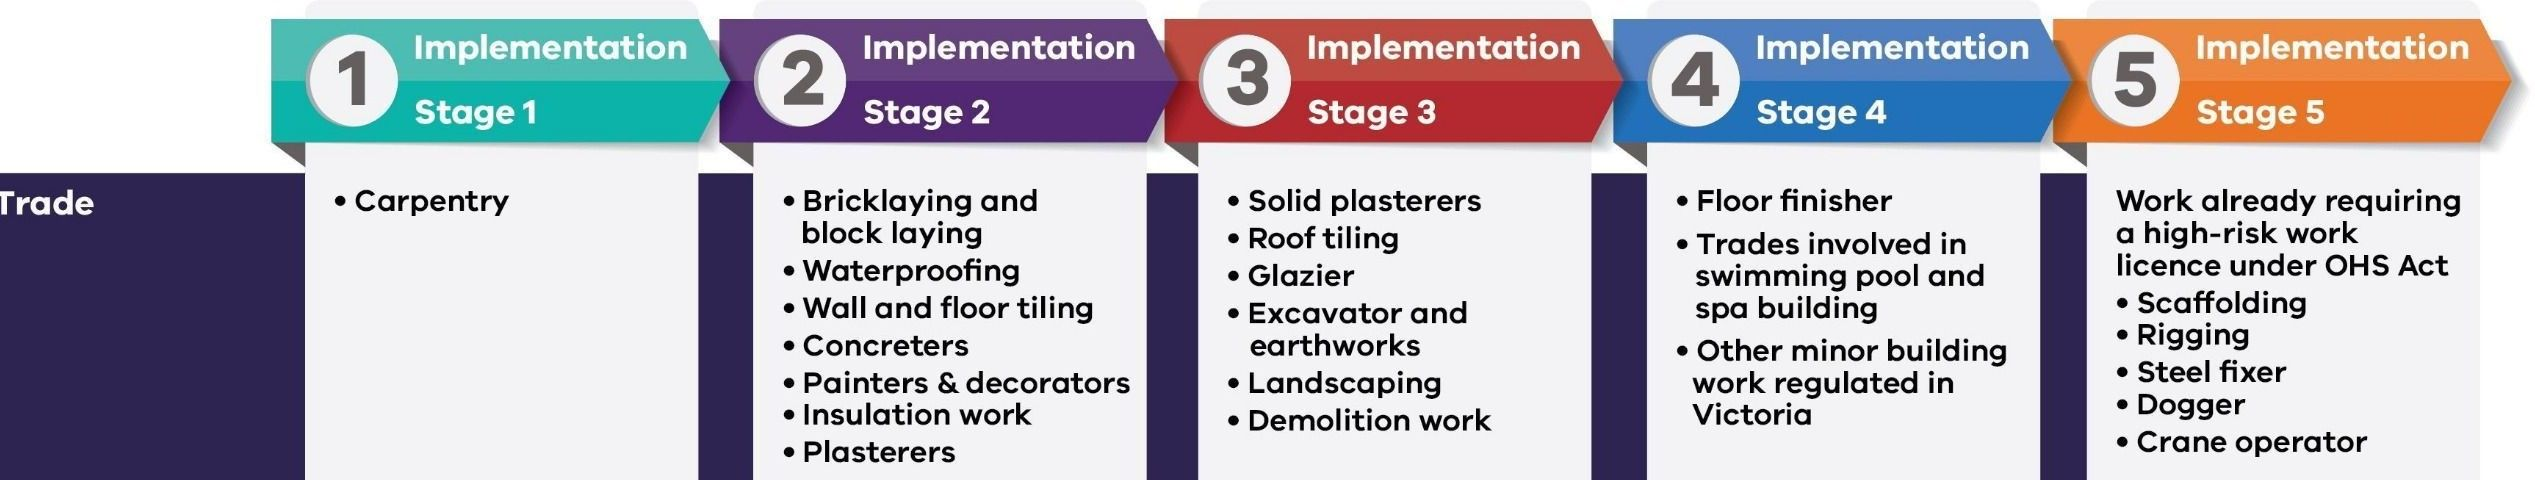 Implementation Stage 1: Carpentry 2021-2022 (application period) 2022-2027 (provision registration) 2027 (last date) Bricklaying and block laying